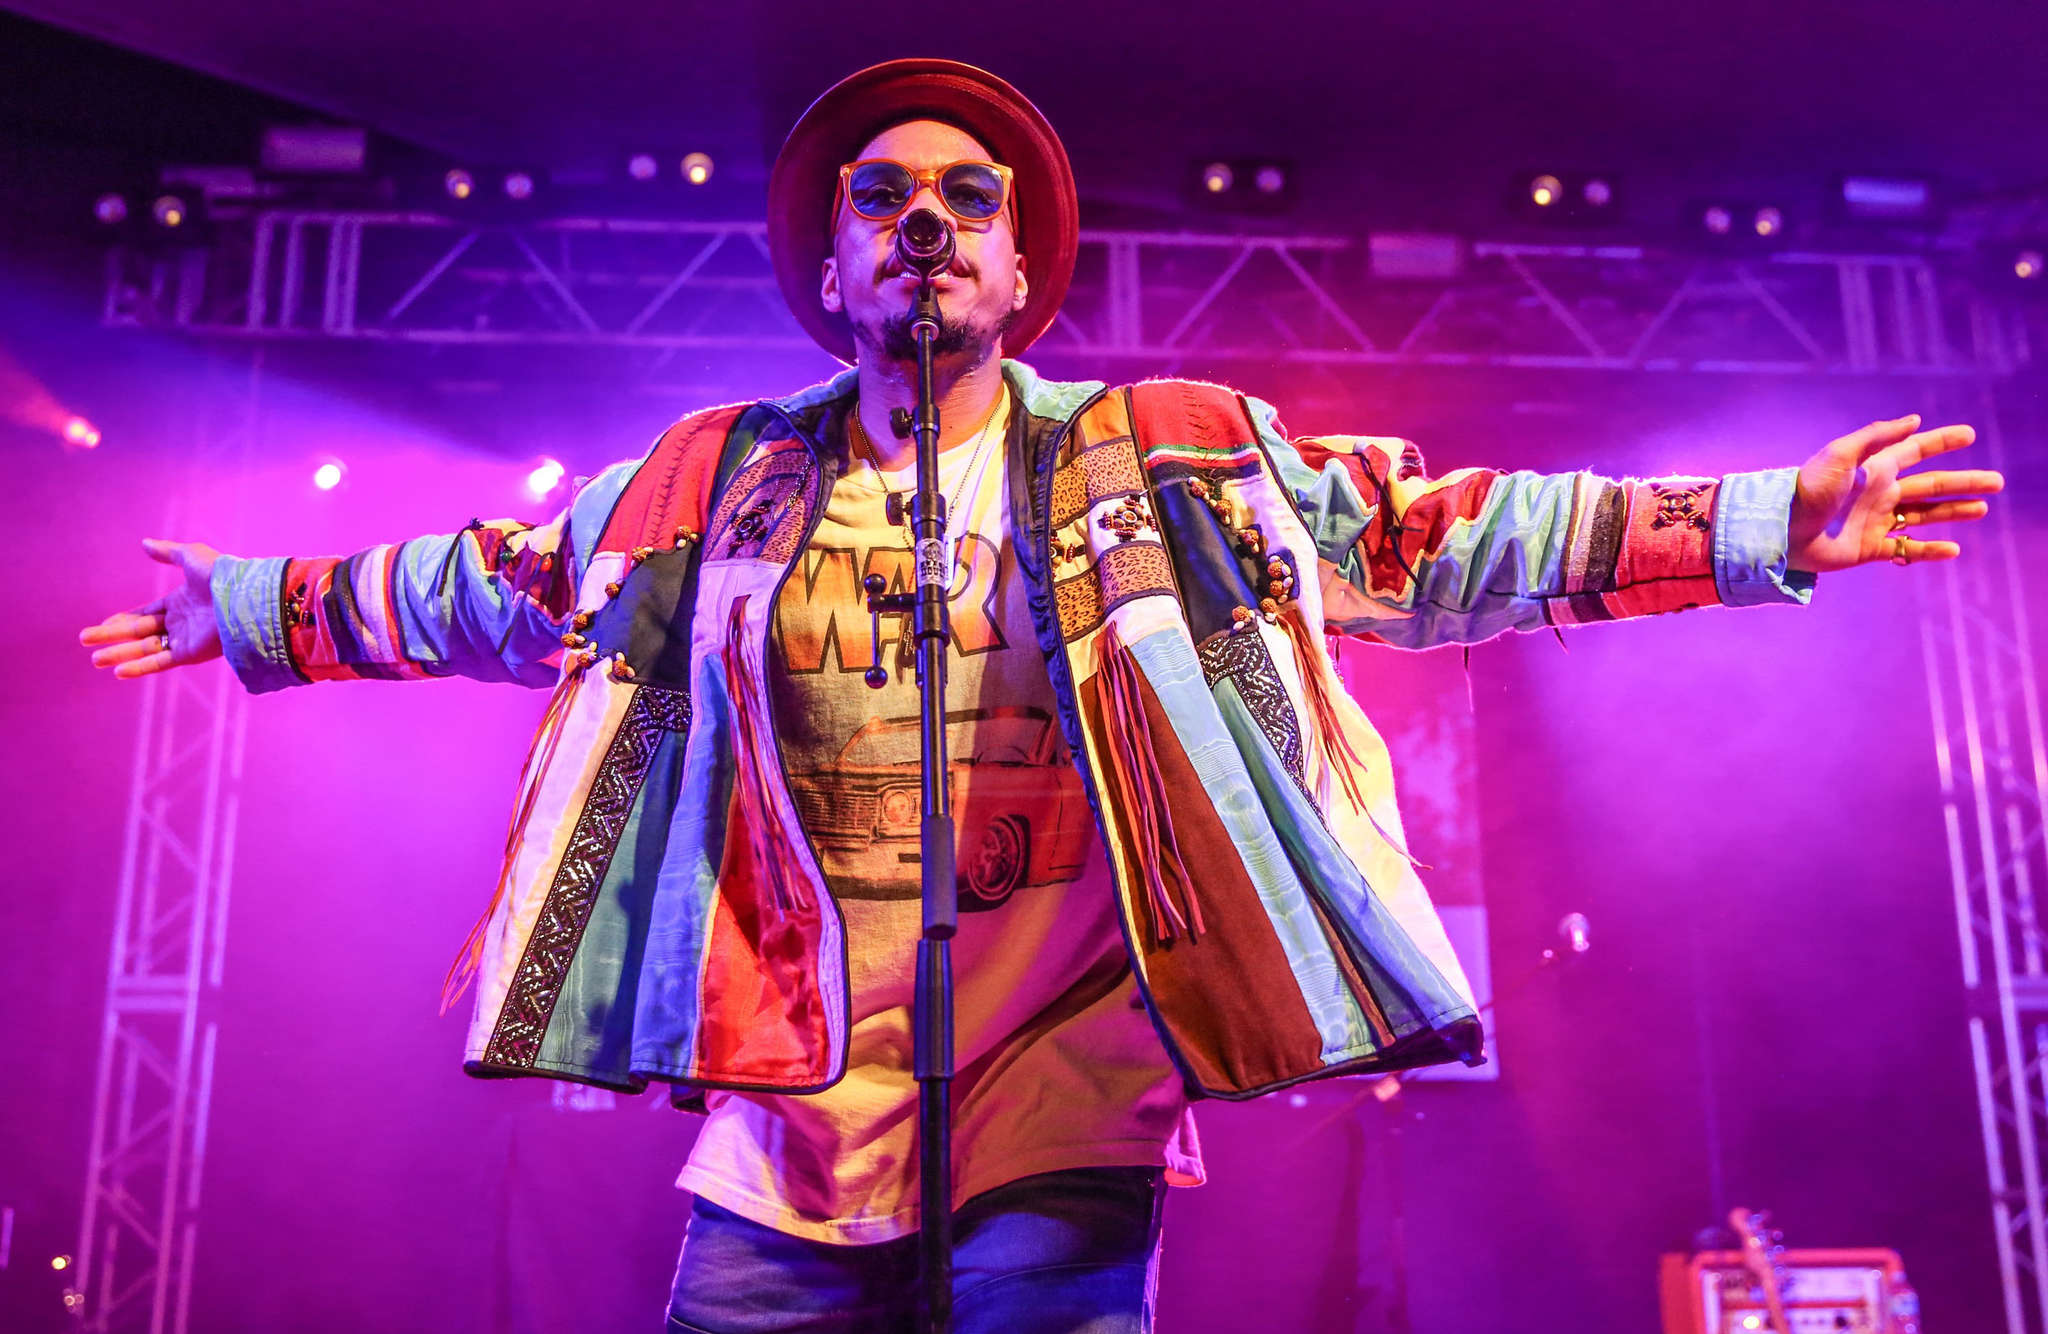 California rapper-singer-drummer Anderson .Paak is set to perform Saturday at the Roots Picnic at Festival Pier.